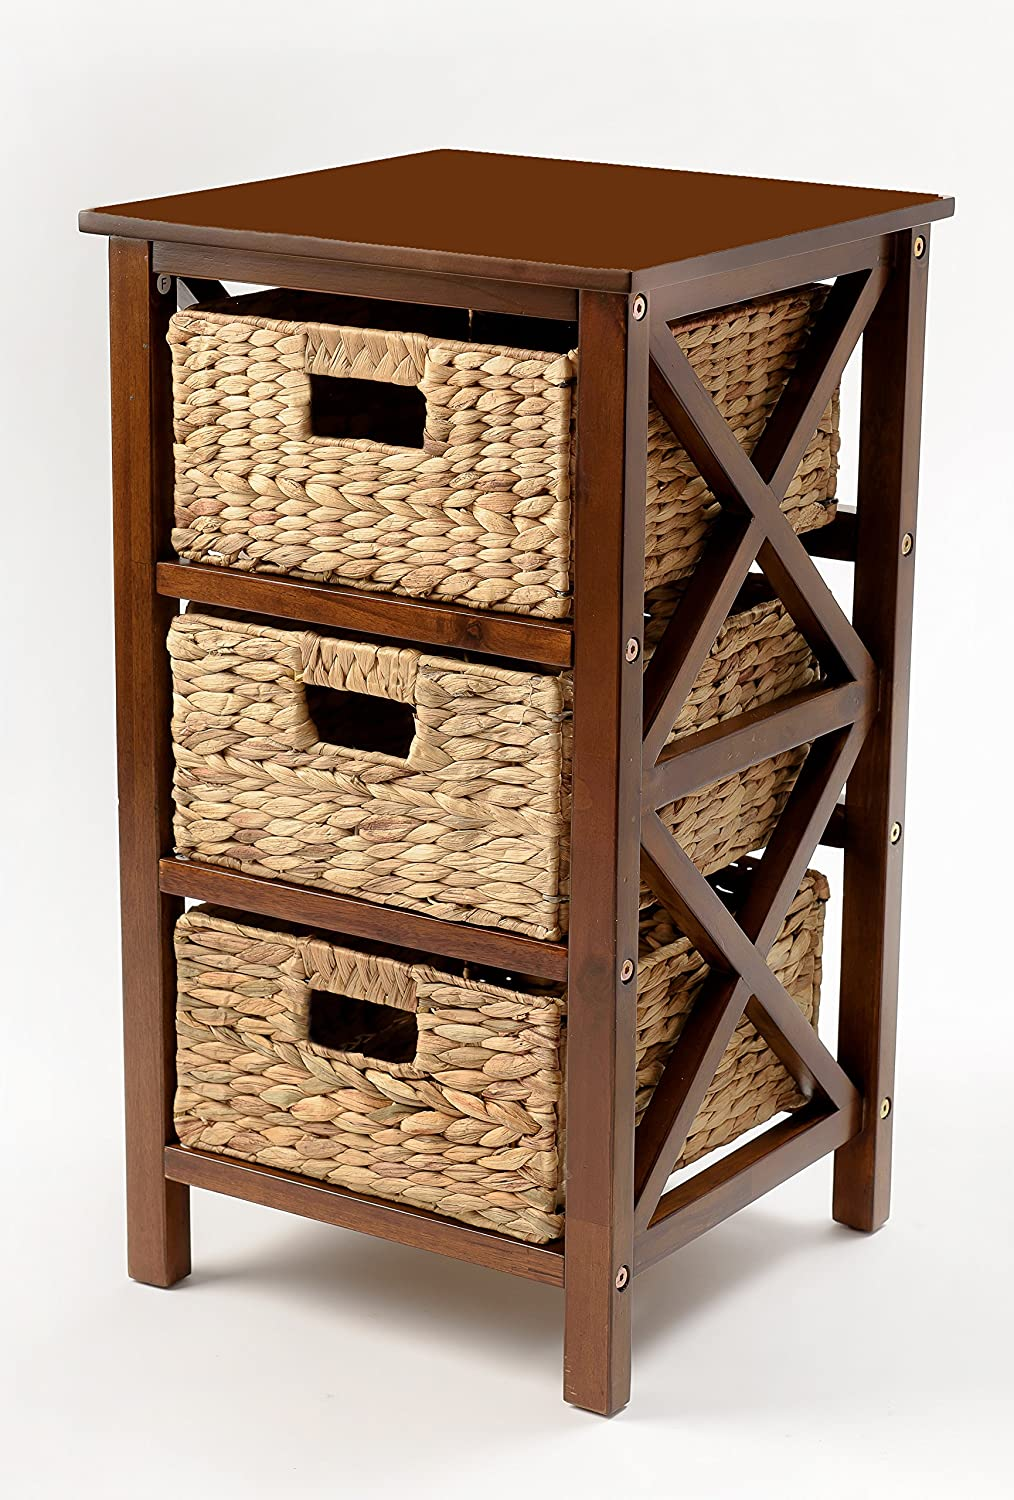 eHemco 3 Tier X-Side End Table/Storage Cabinet with 3 Baskets (Walnut)